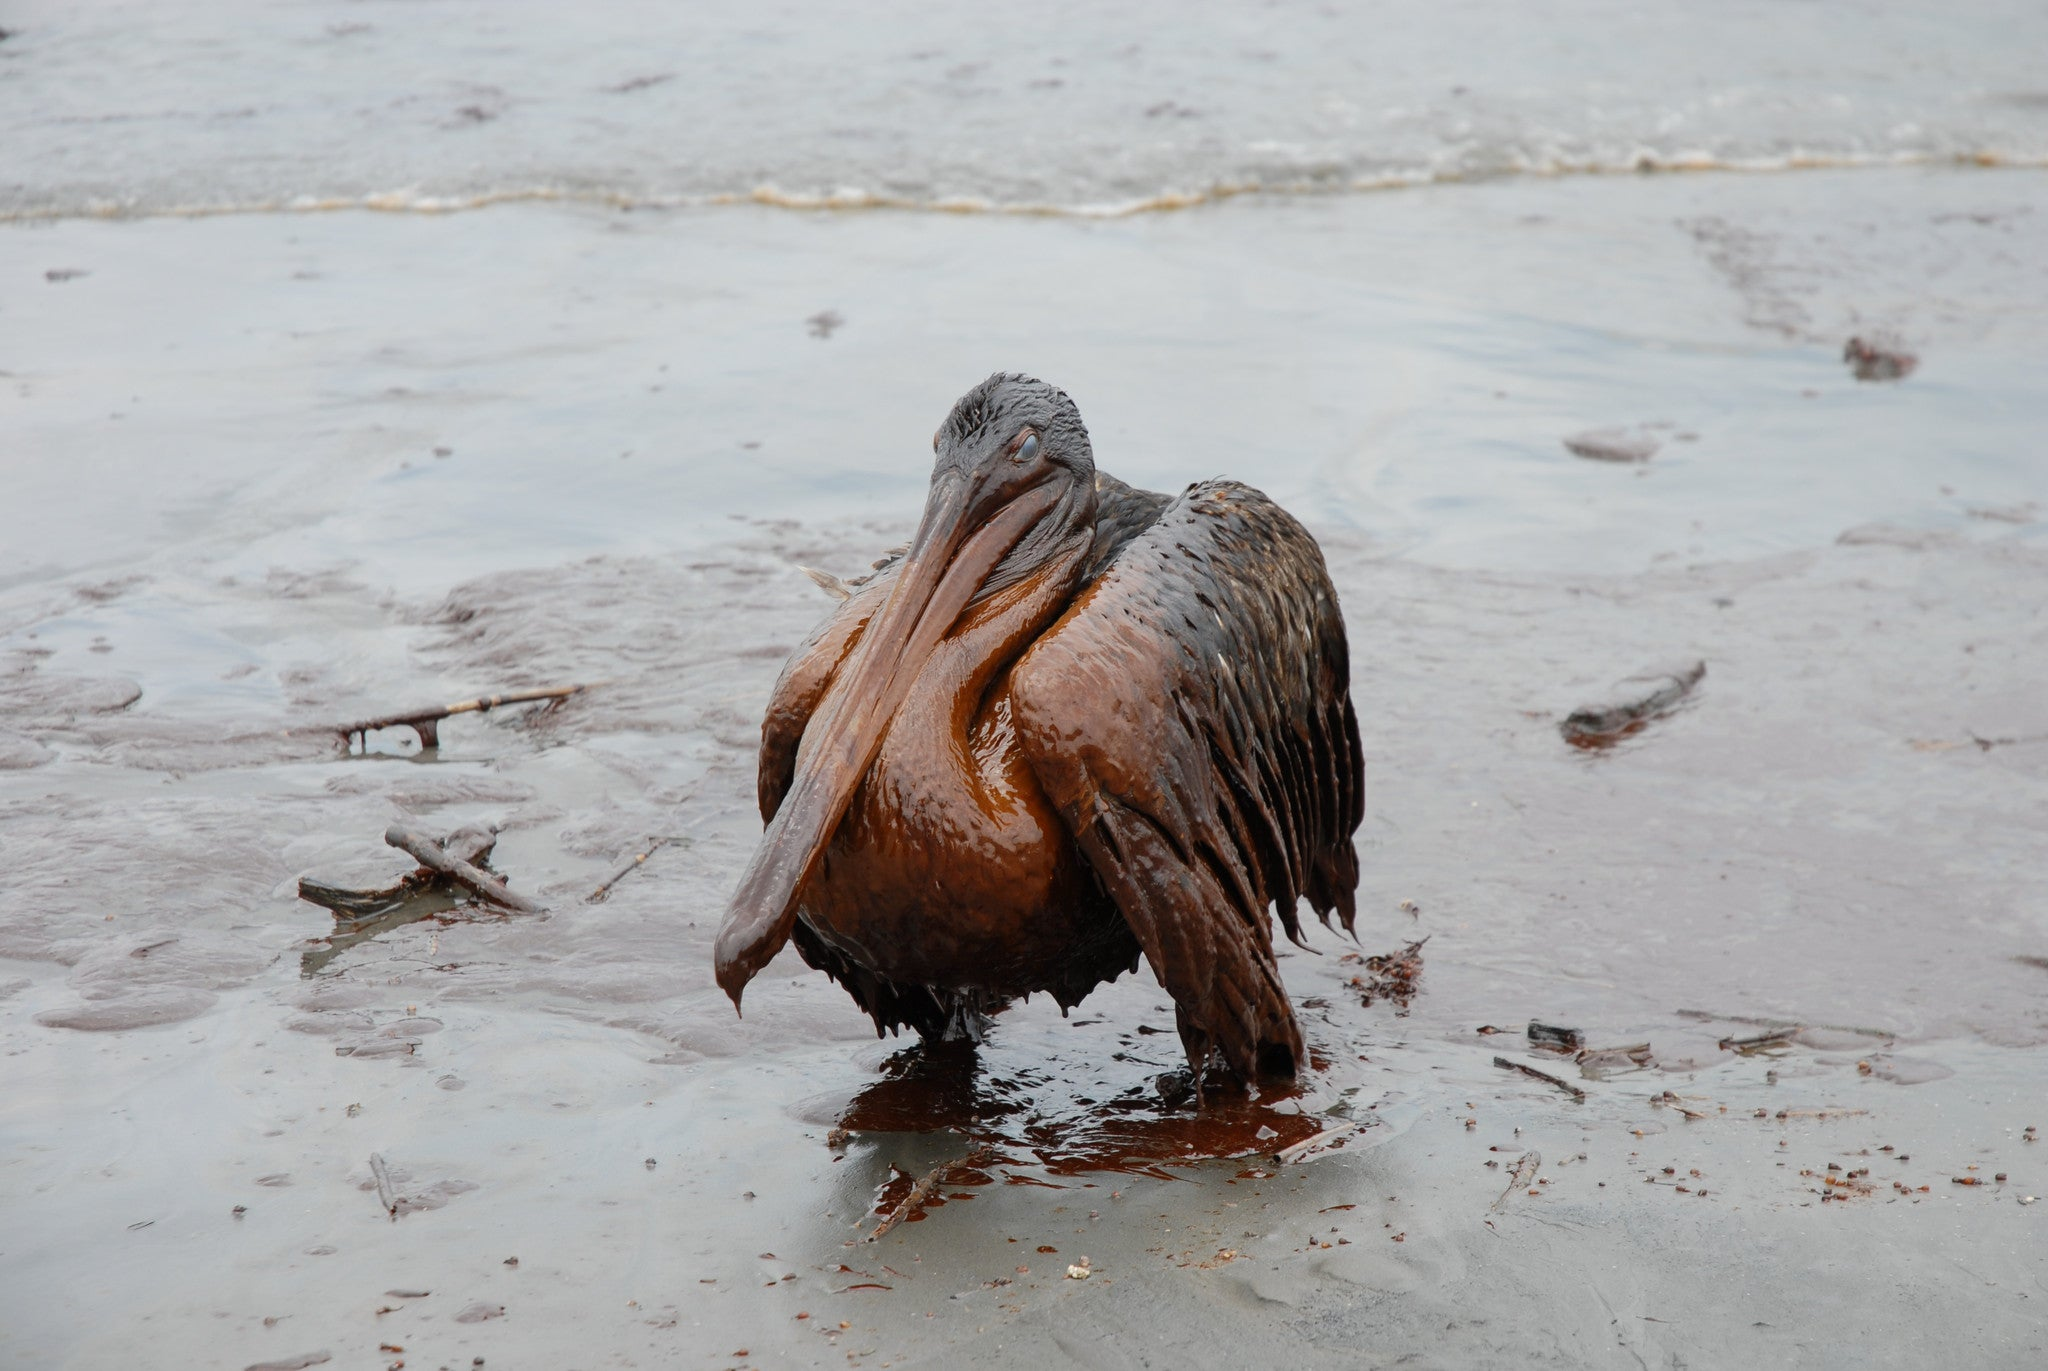 Oil poisoning wildlife after Deepwater Horizon explosion from Ecocide documentary